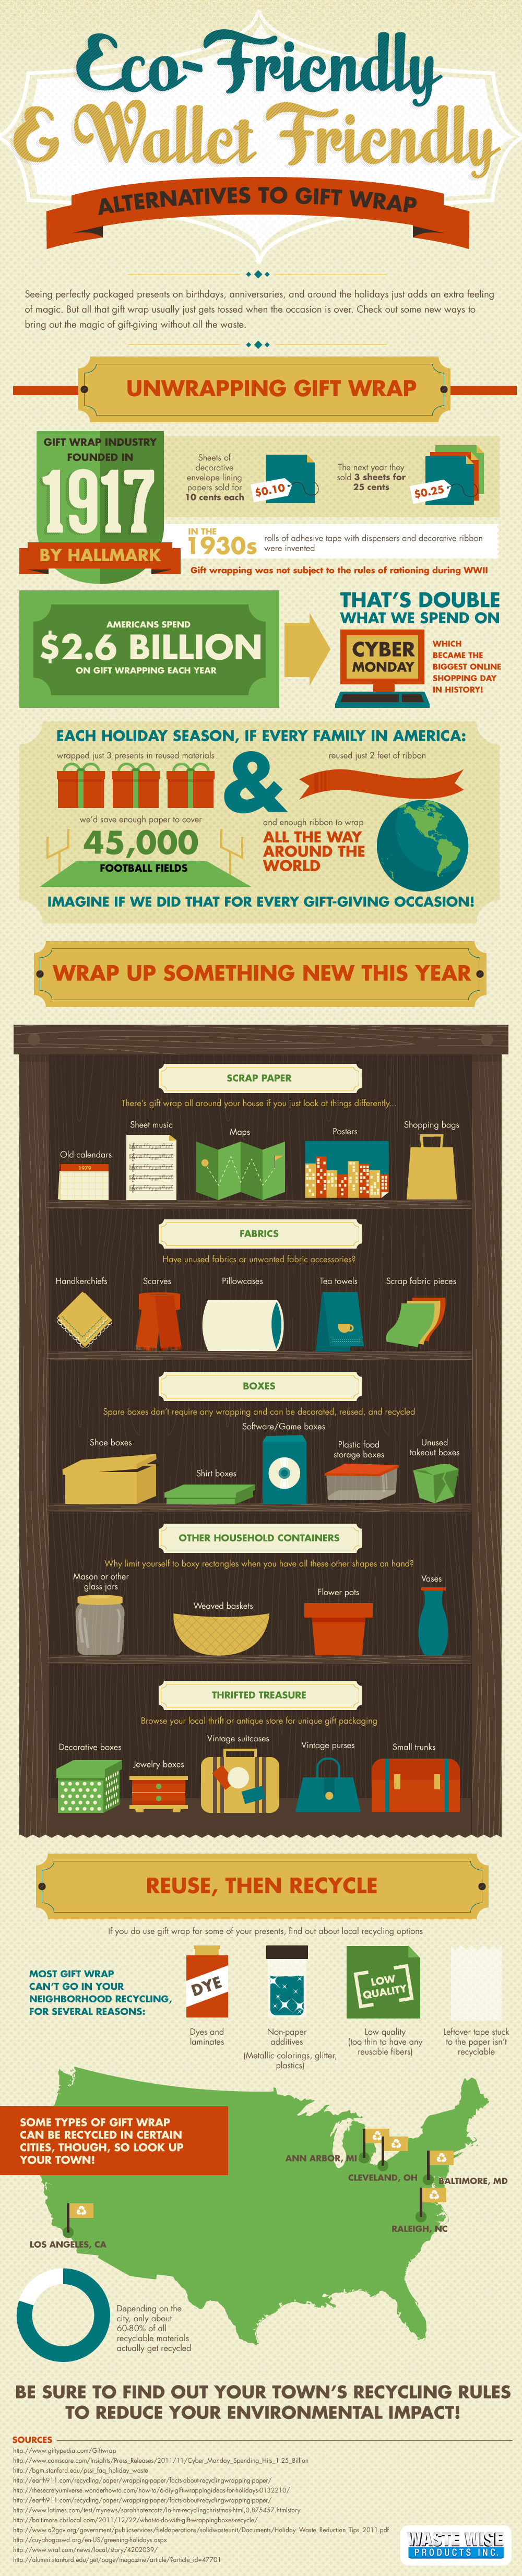 Waste Wise Gift Wrap Recycling Infographic